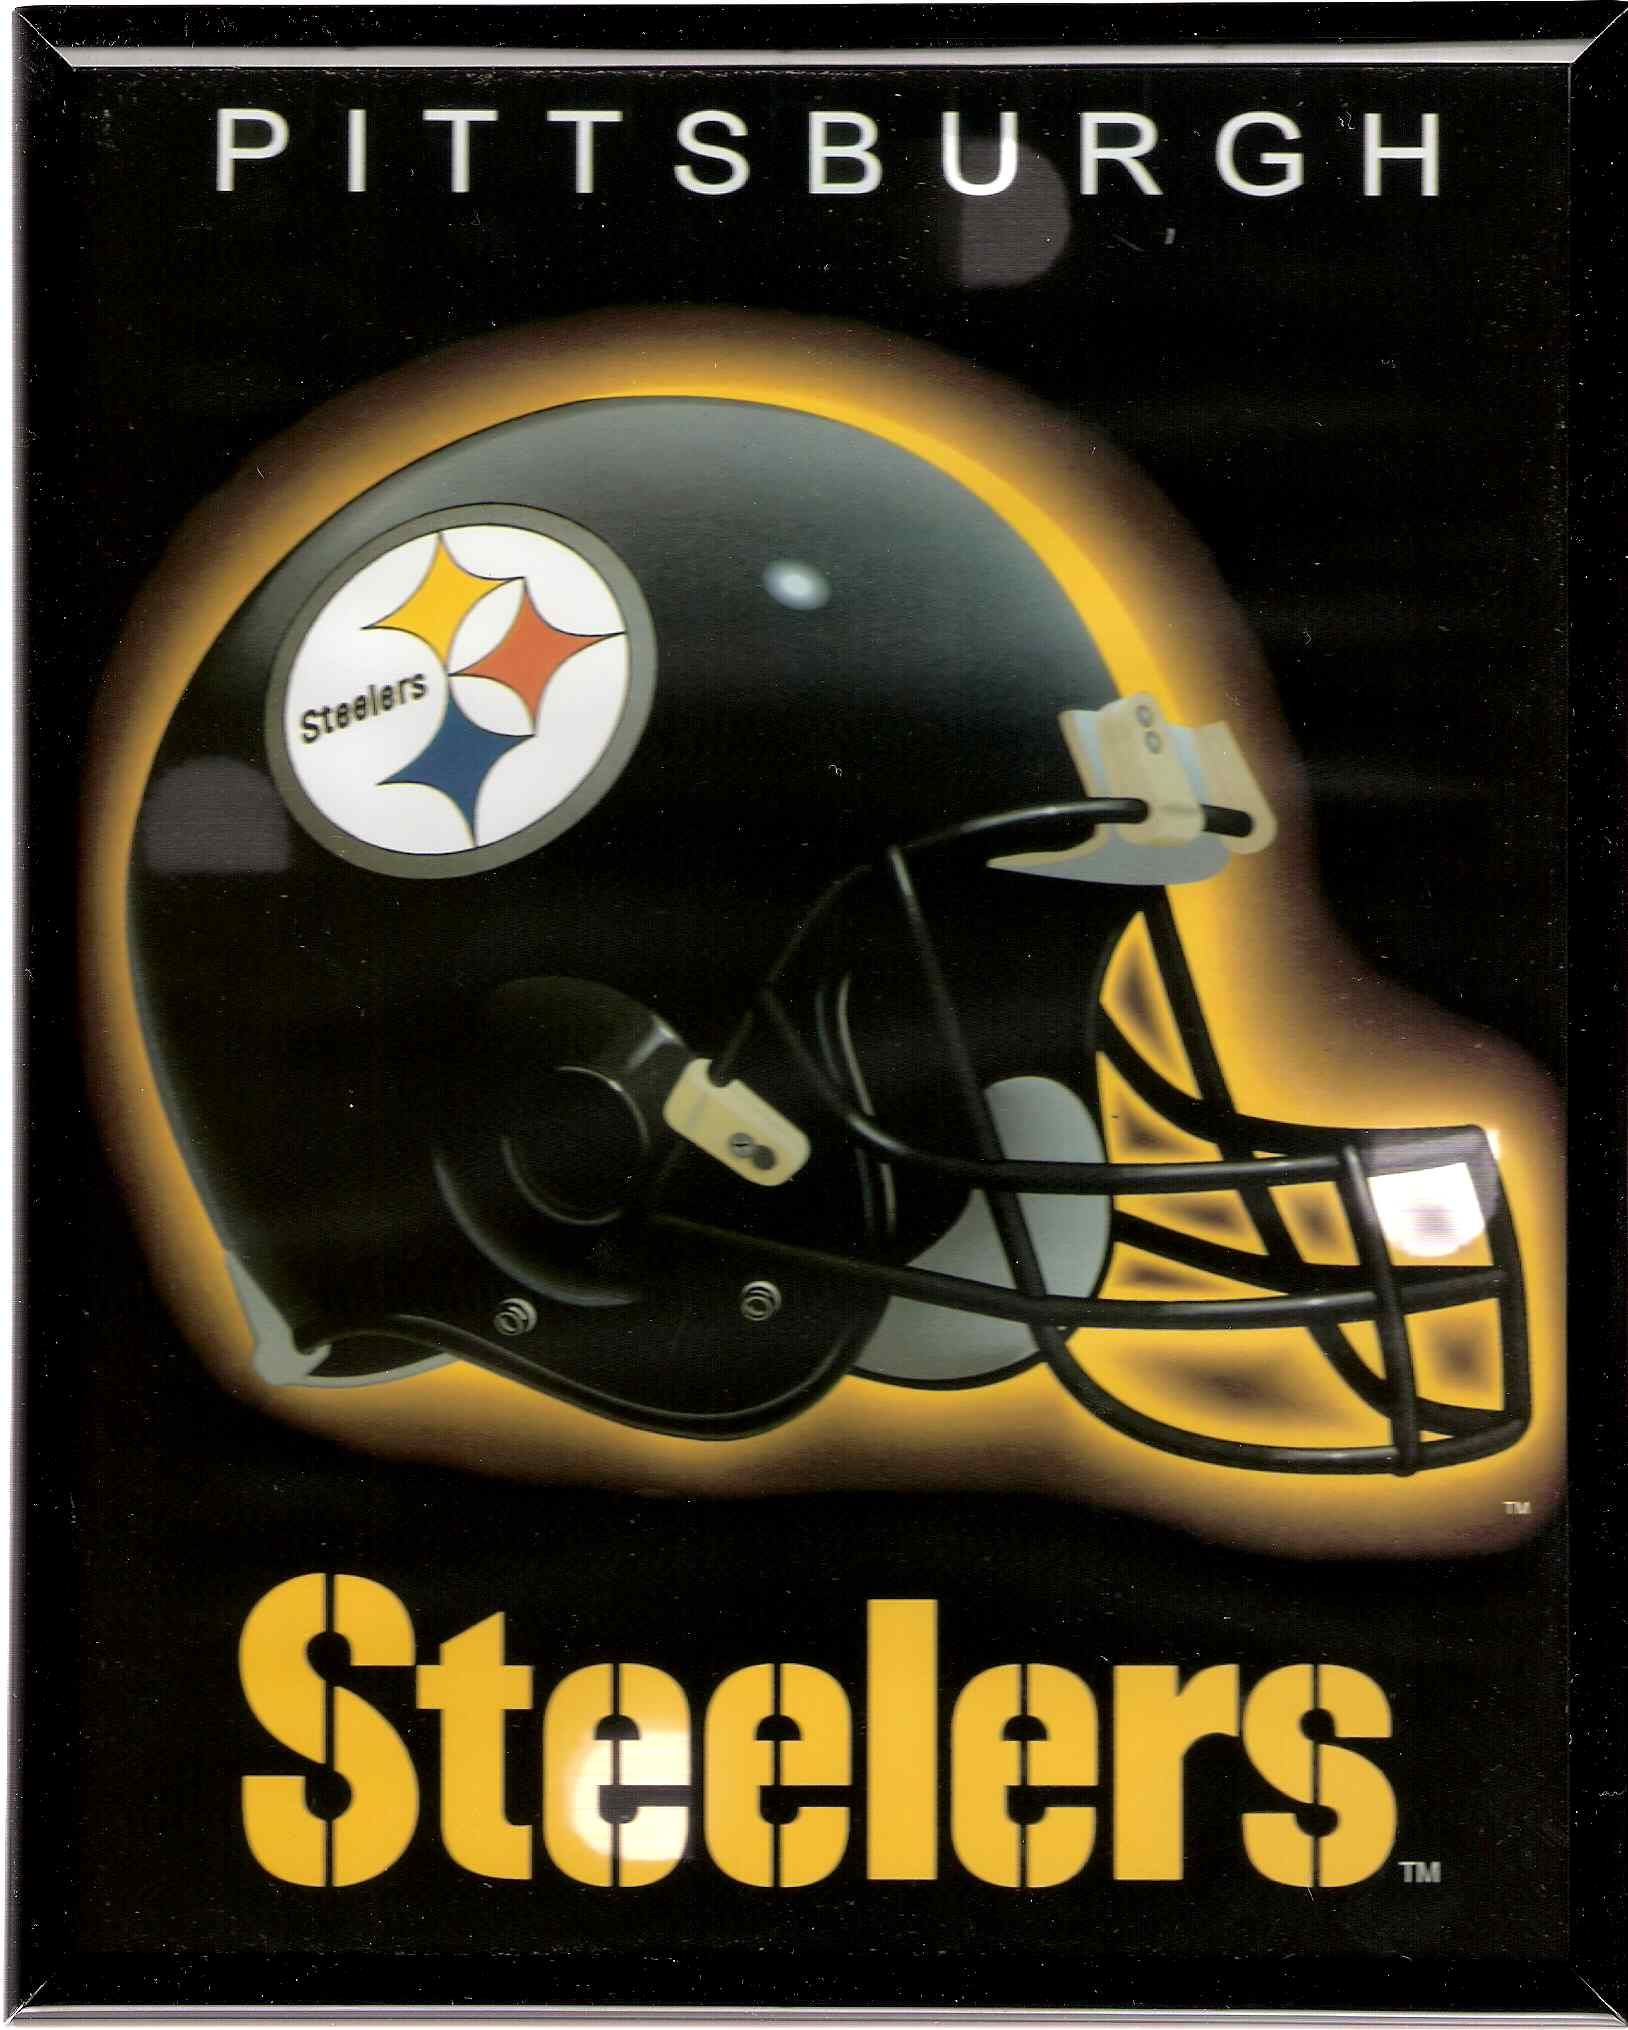 Super bowl madness pittsburgh steelers steelers symbol and super bowl madness biocorpaavc